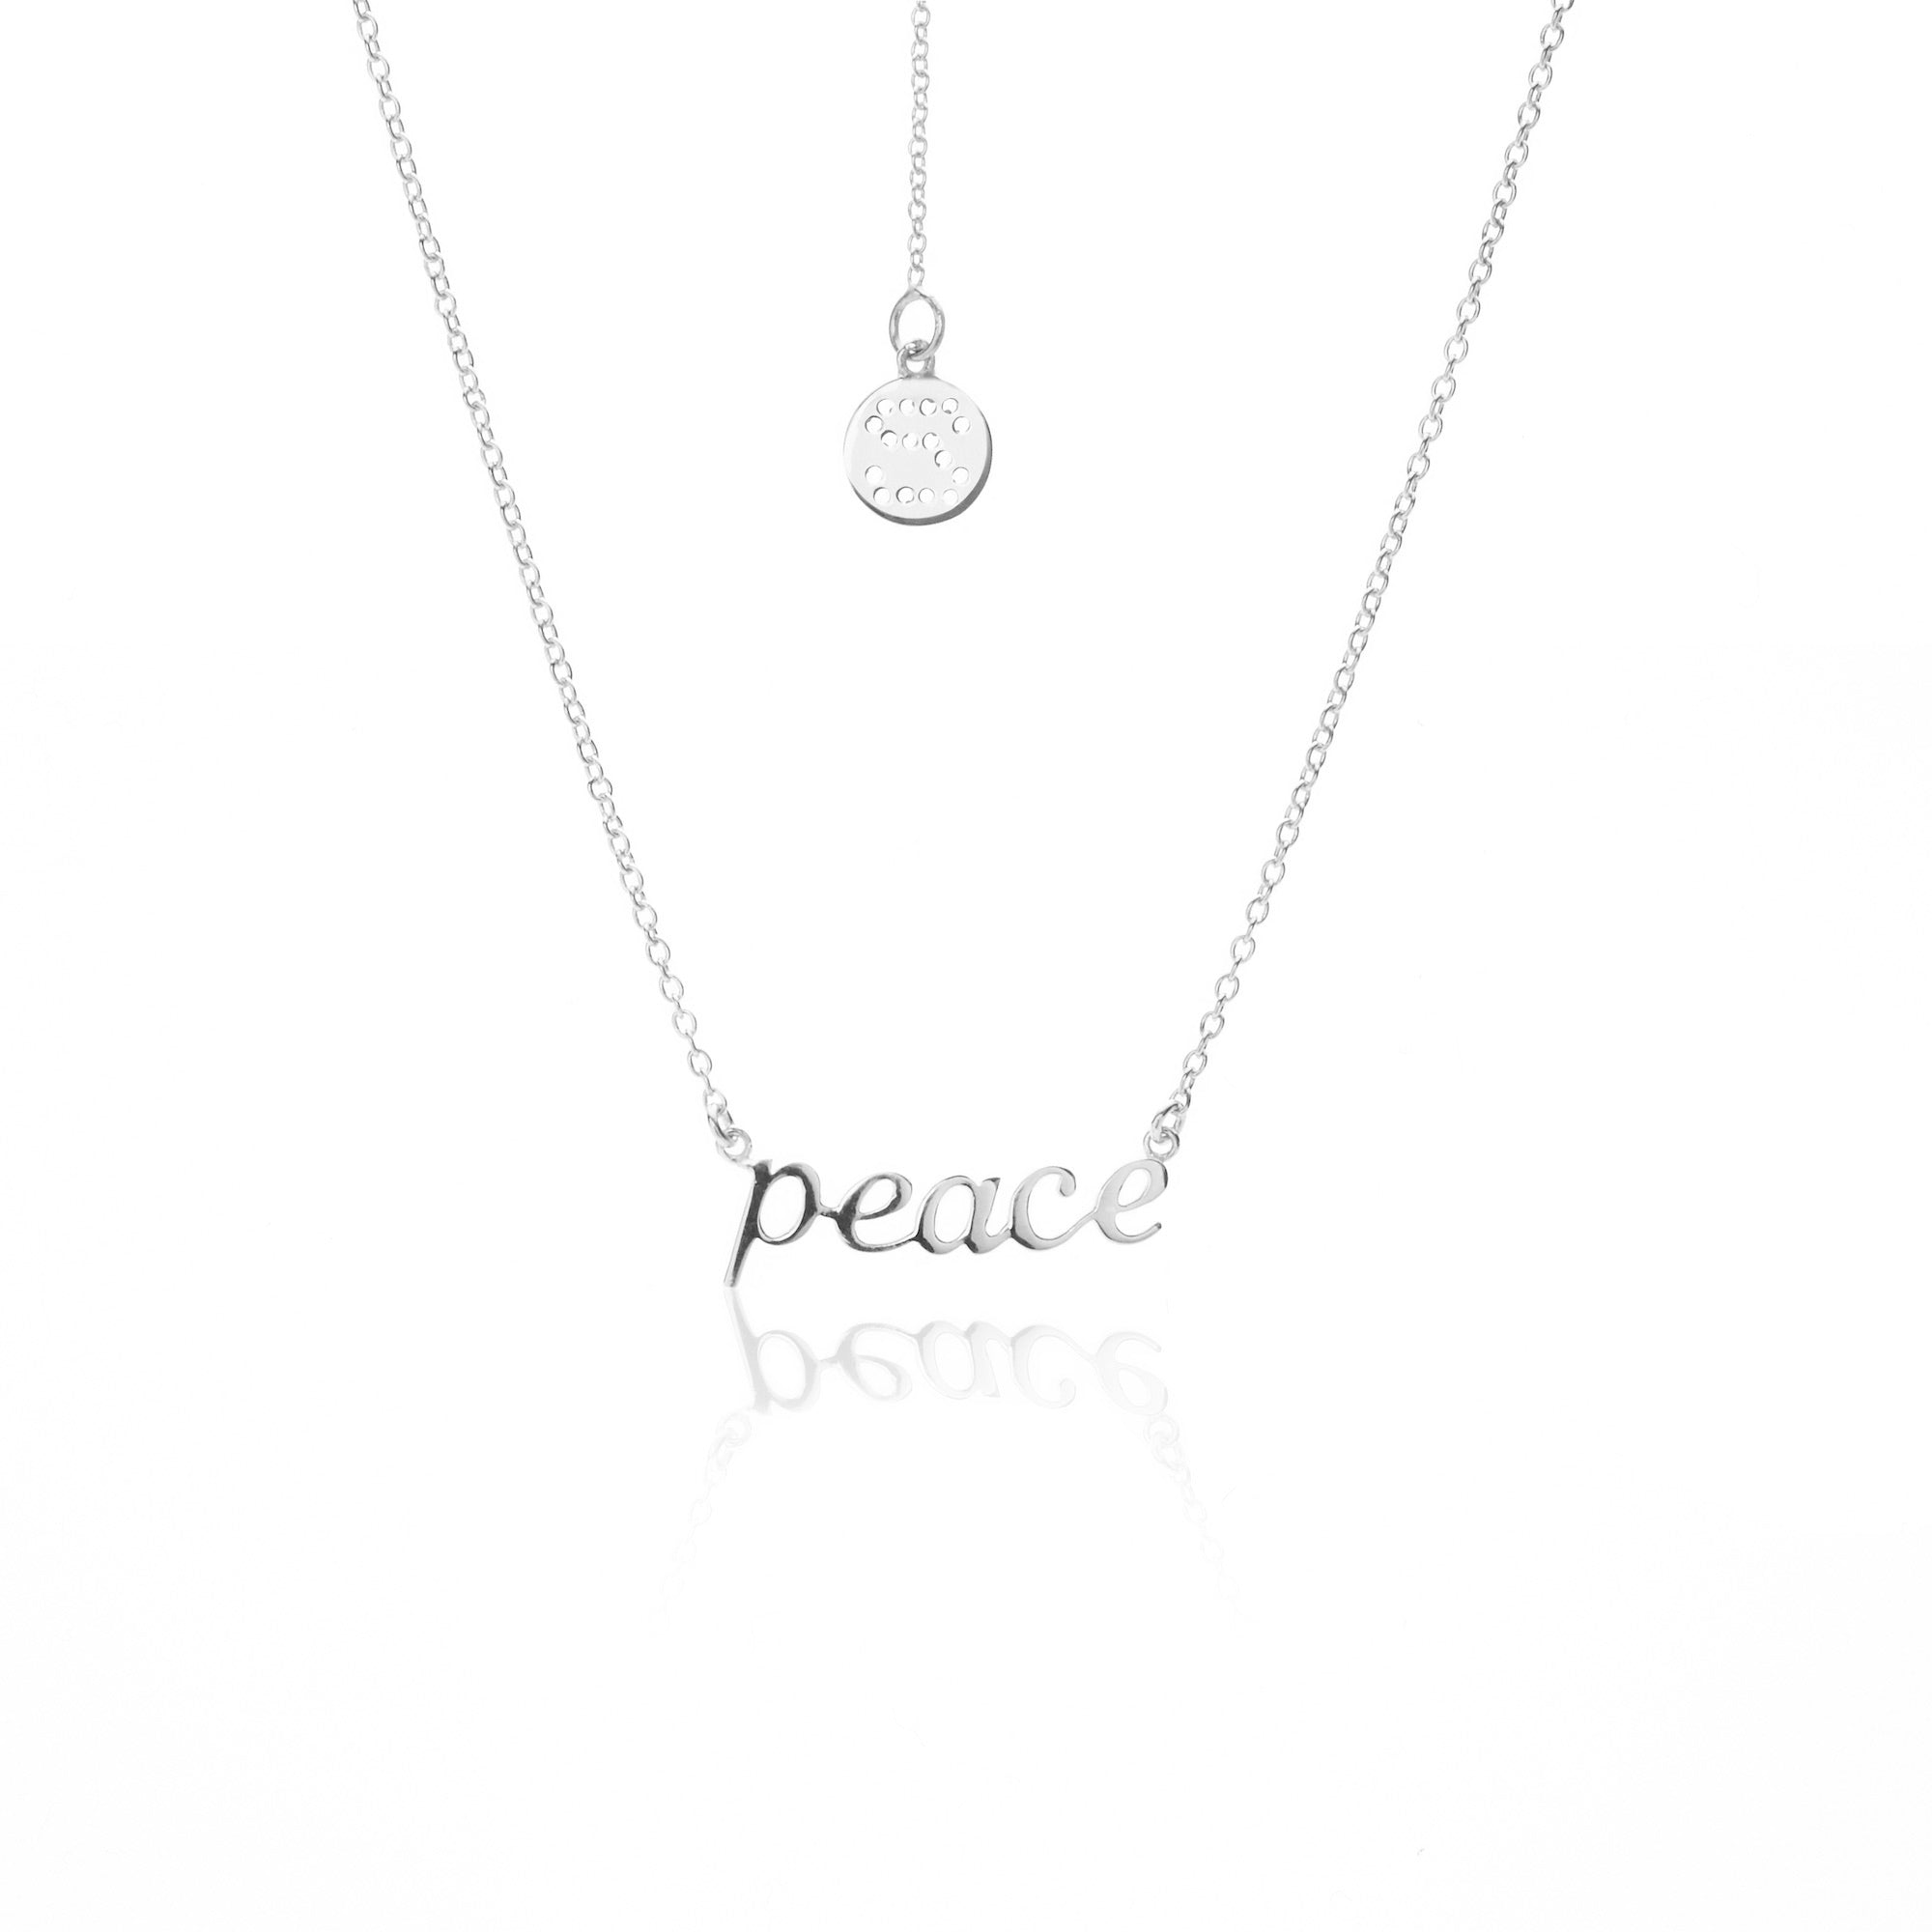 Silk & Steel Jewellery Superfine PEACE Sterling Silver Necklace